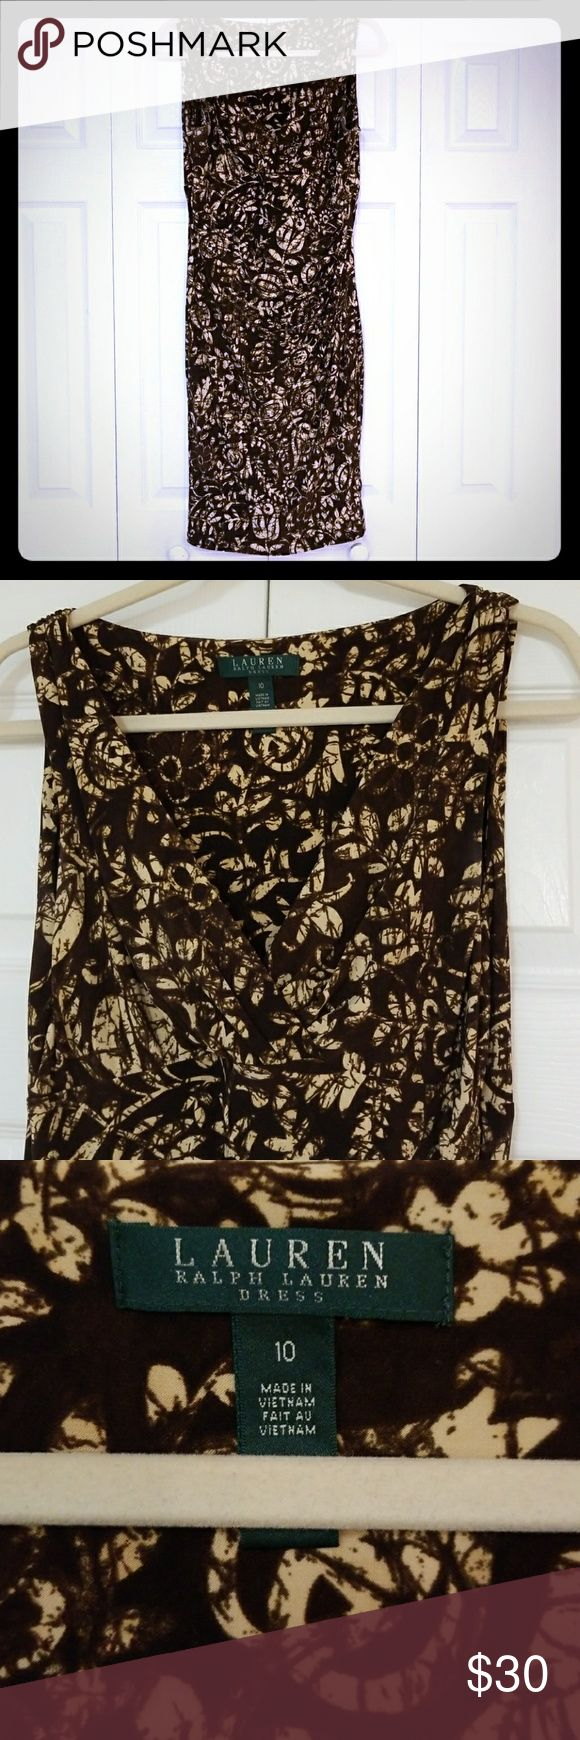 Ralph Lauren Sundress Stretchy, side-ruched, criss-cross neckline on this mid length, super flattering, sleeveless mock wrap dress. Gorgeous brown and cream floral design. Lauren by Ralph Lauren Dresses size 10. Gently used, clean, in EUC. $30 Lauren Ralph Lauren Dresses Midi